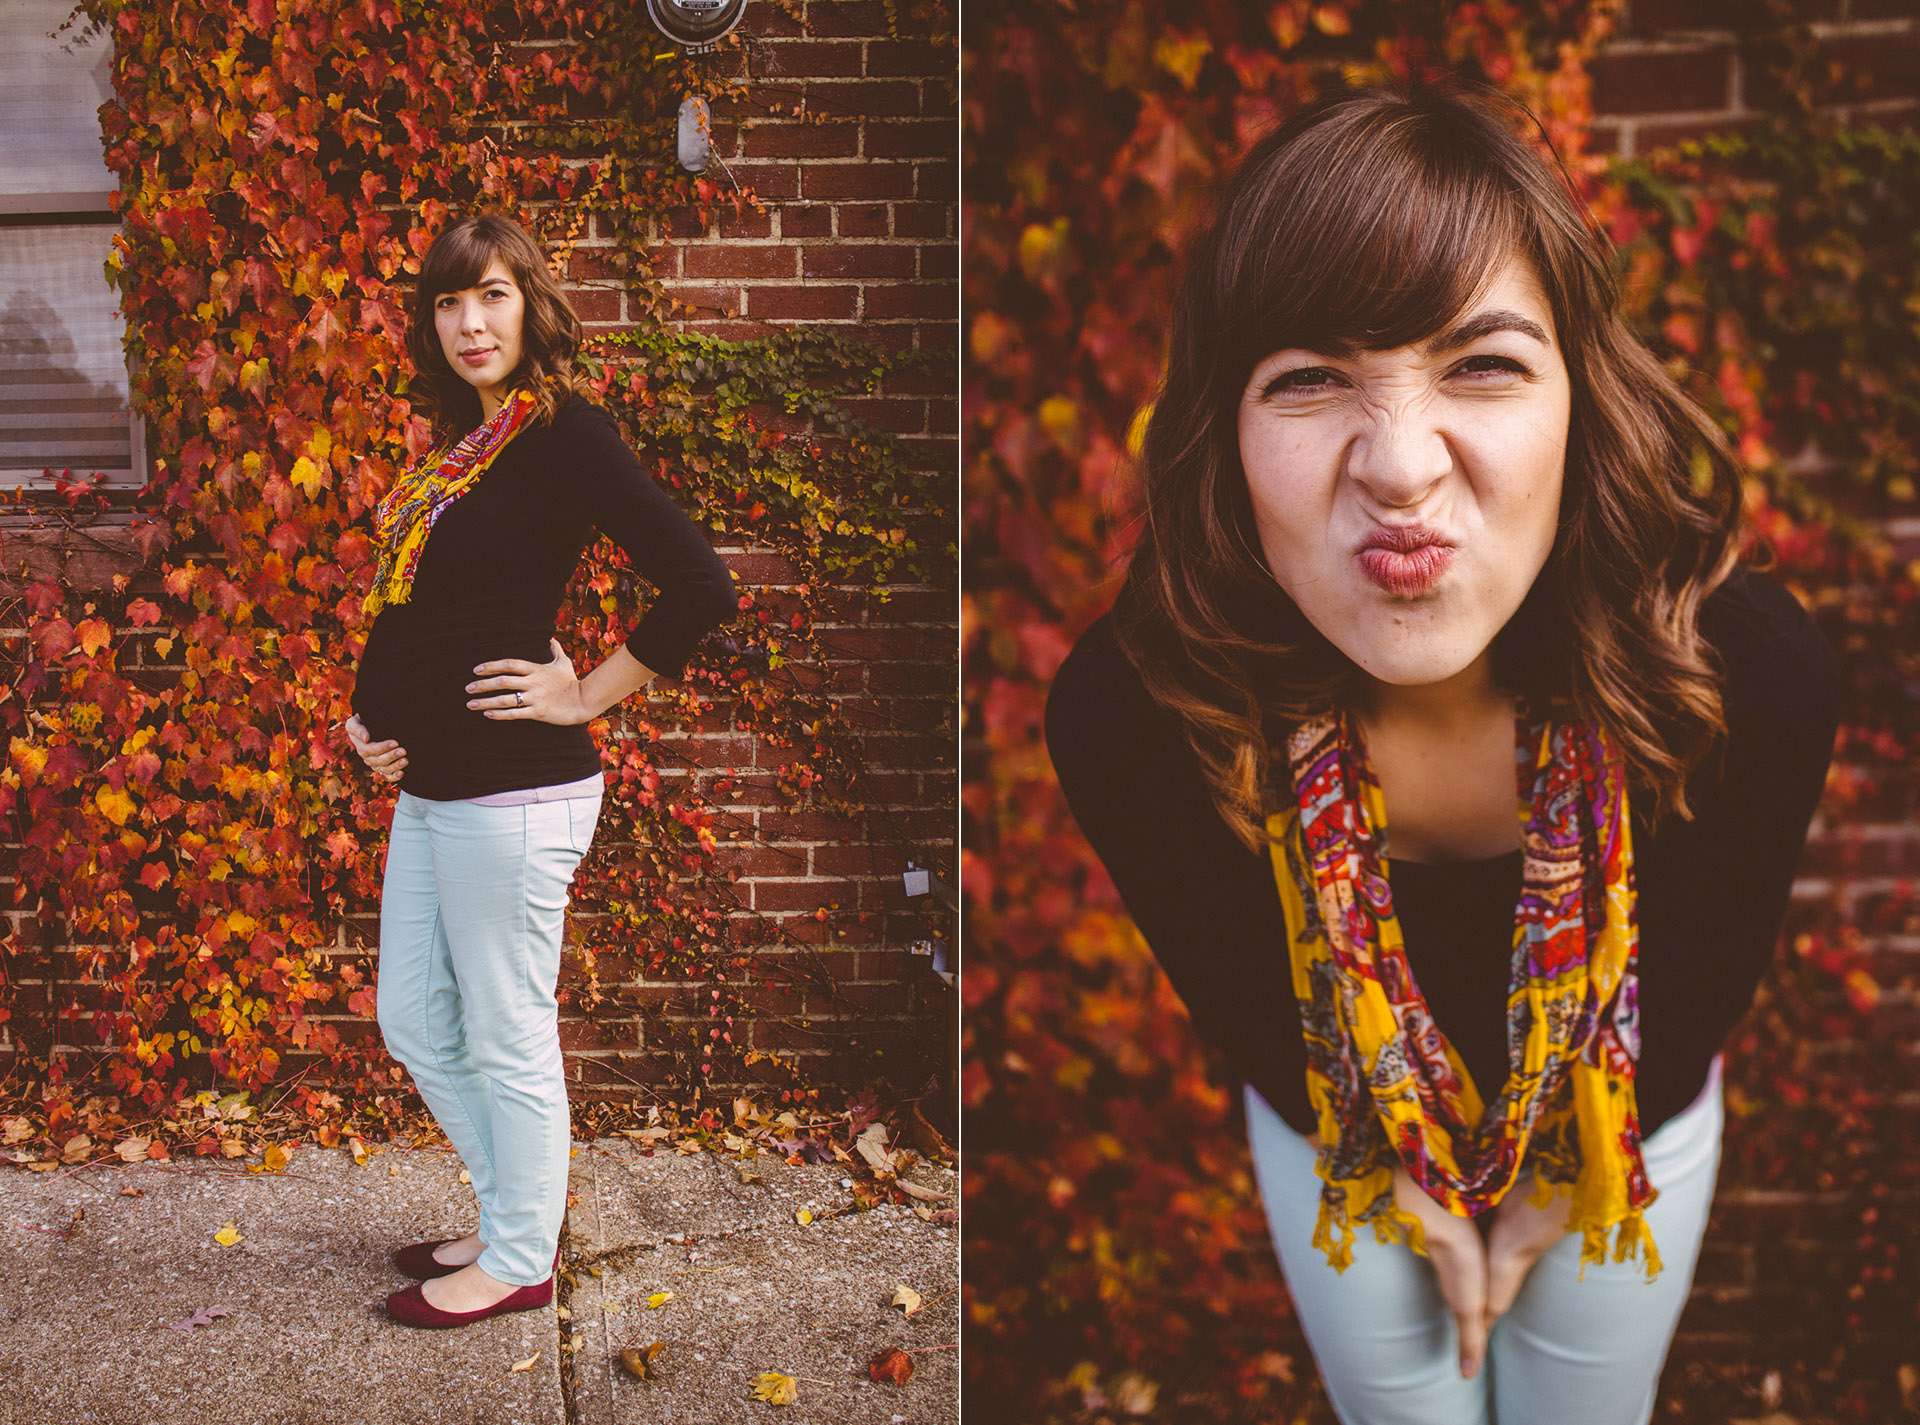 Angela Clunk Maternity Photos During Pregnancy - too much awesomeness photography - image 29-2.jpg